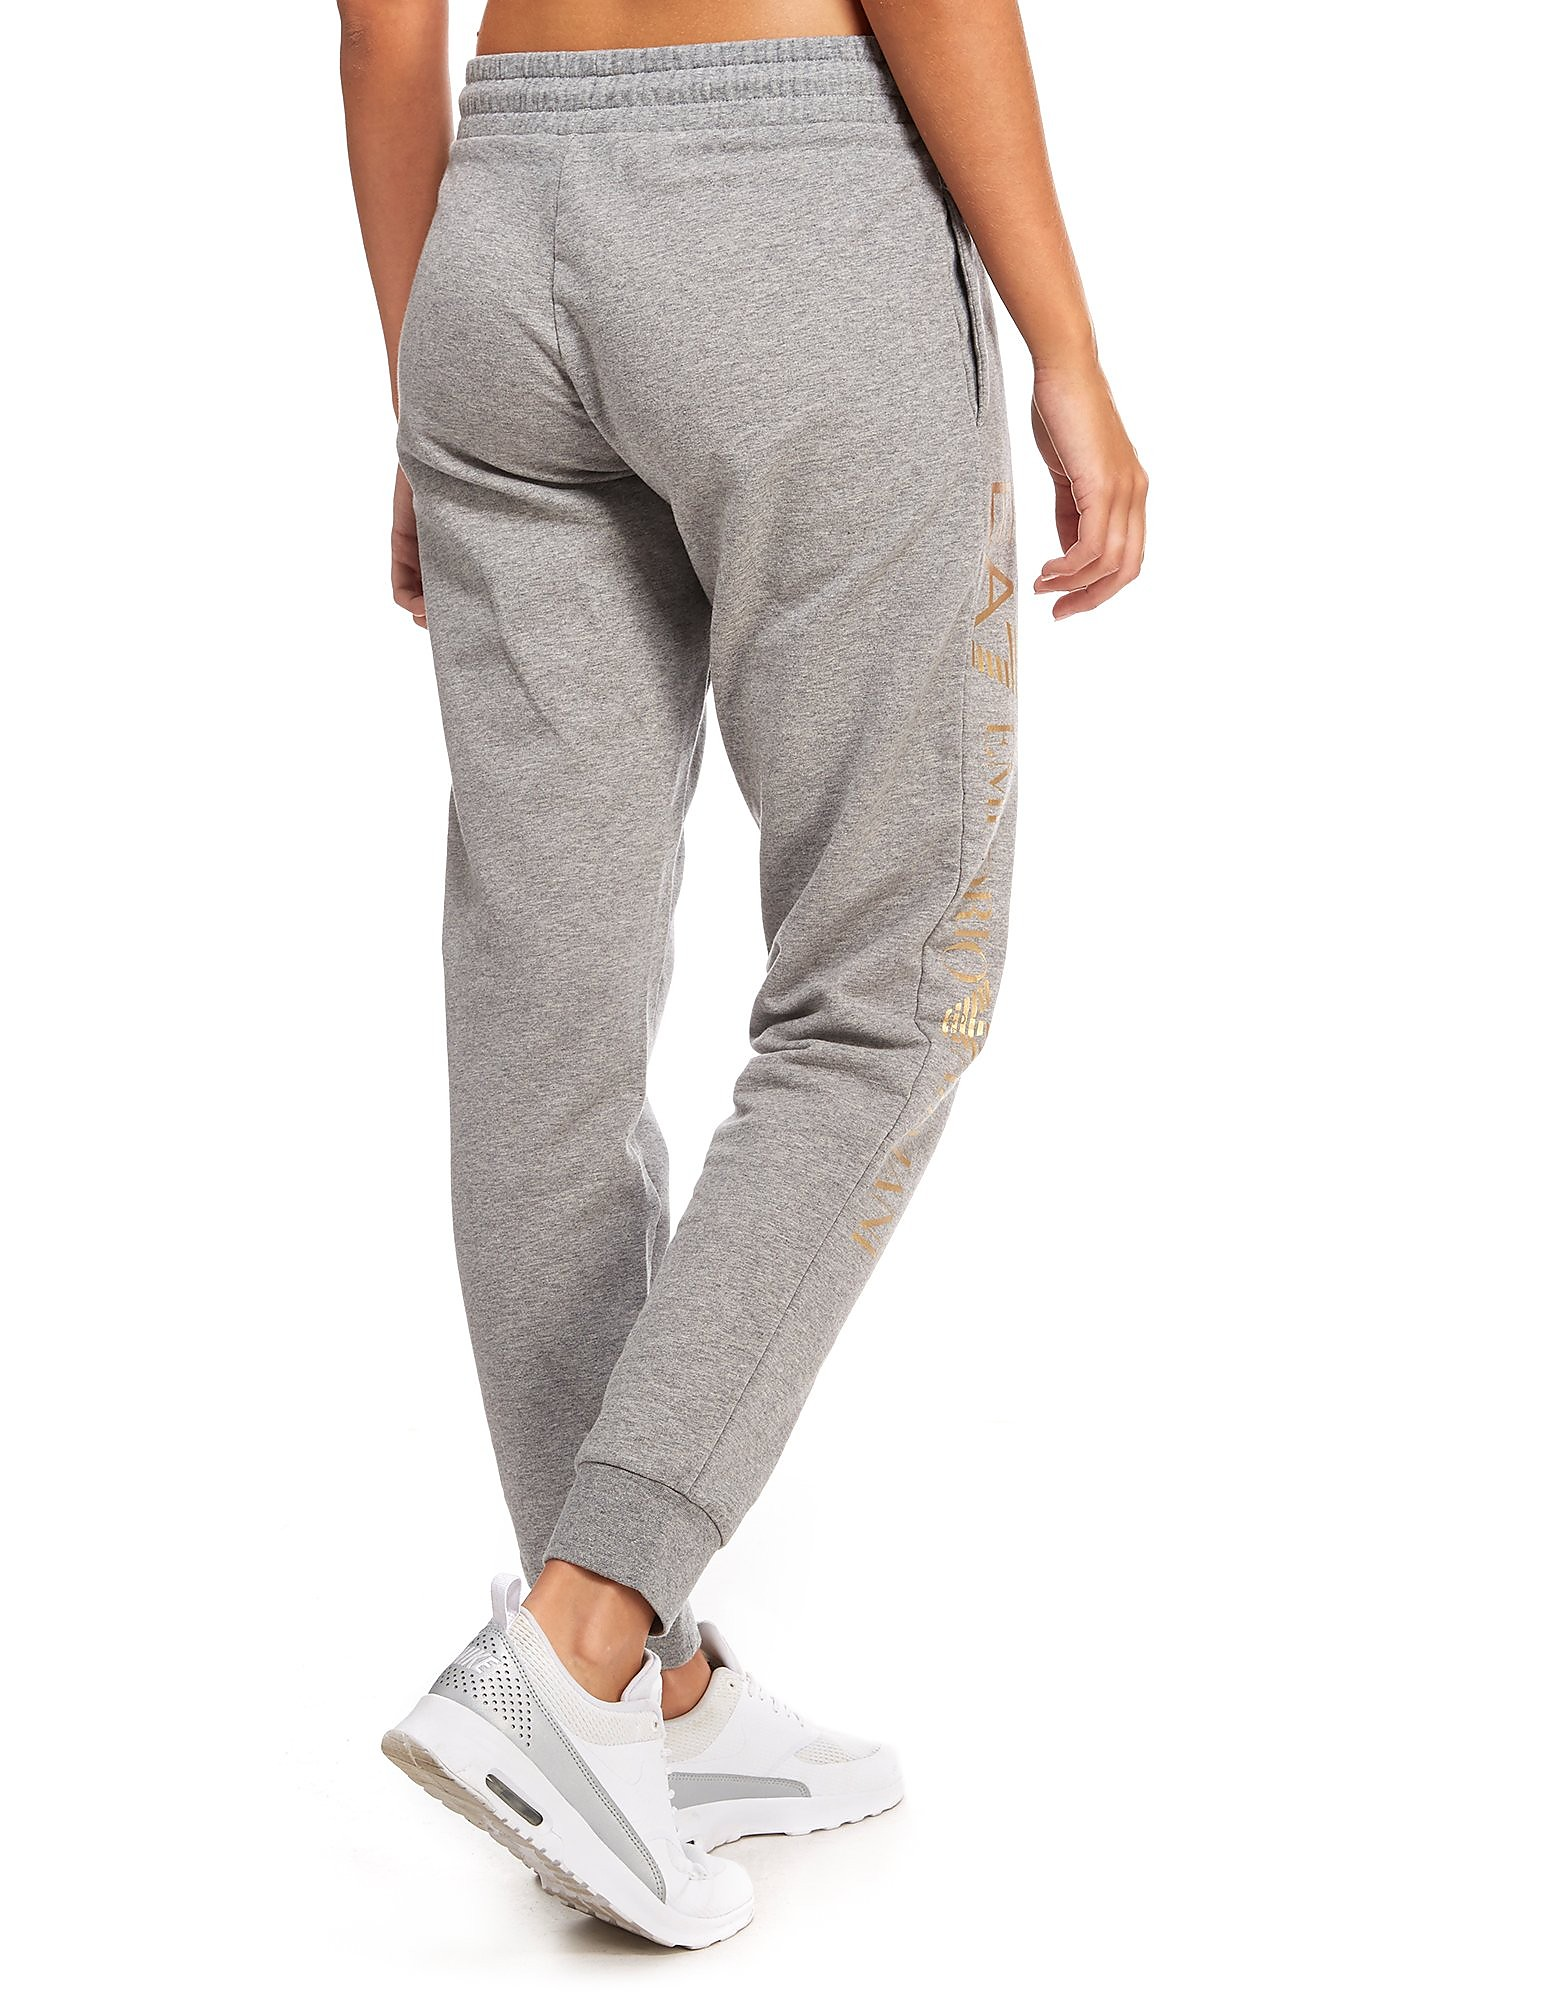 Emporio Armani EA7 Fleece Pants